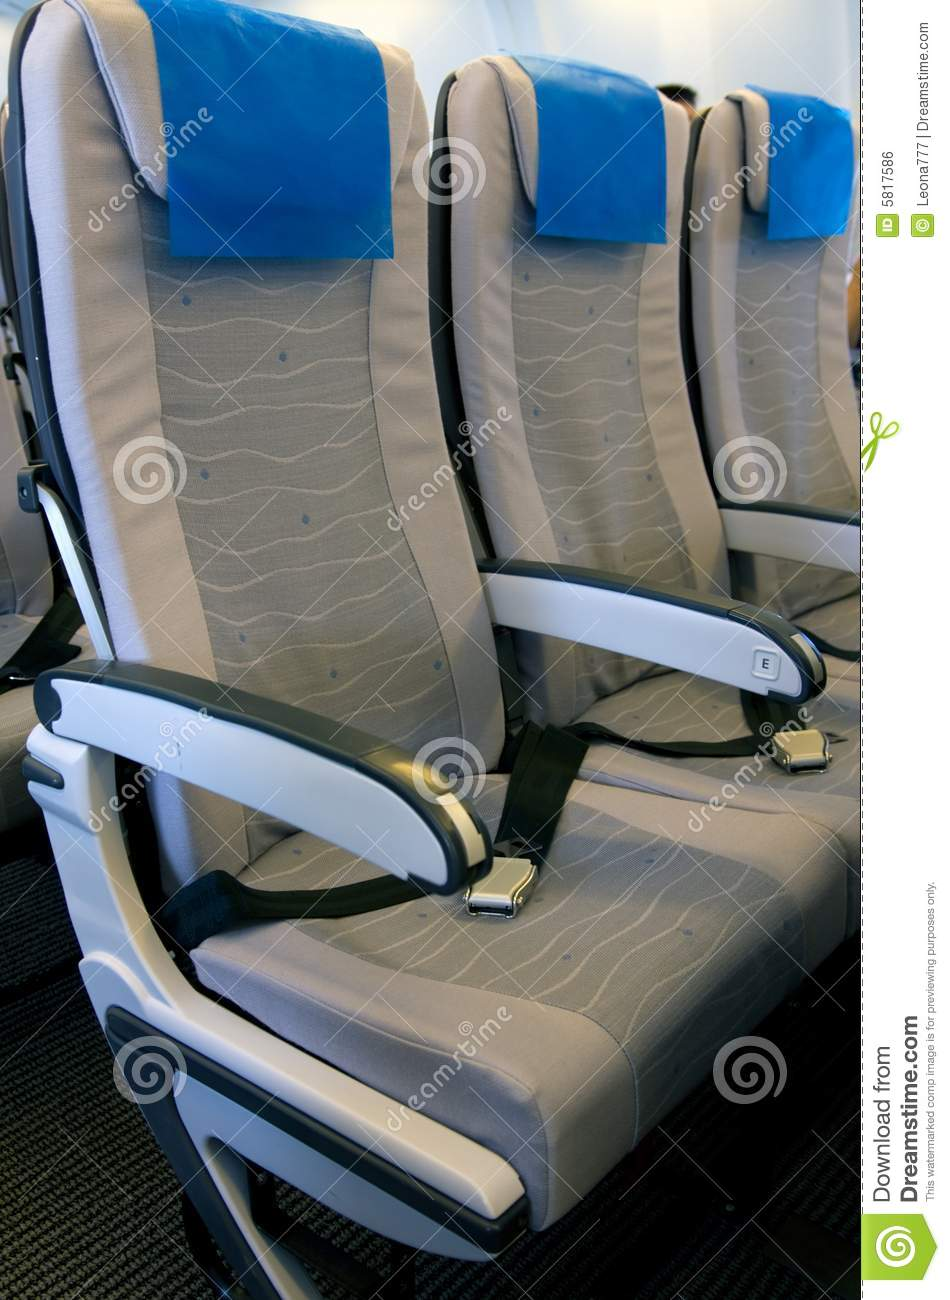 airplane seats royalty free stock image image 5817586